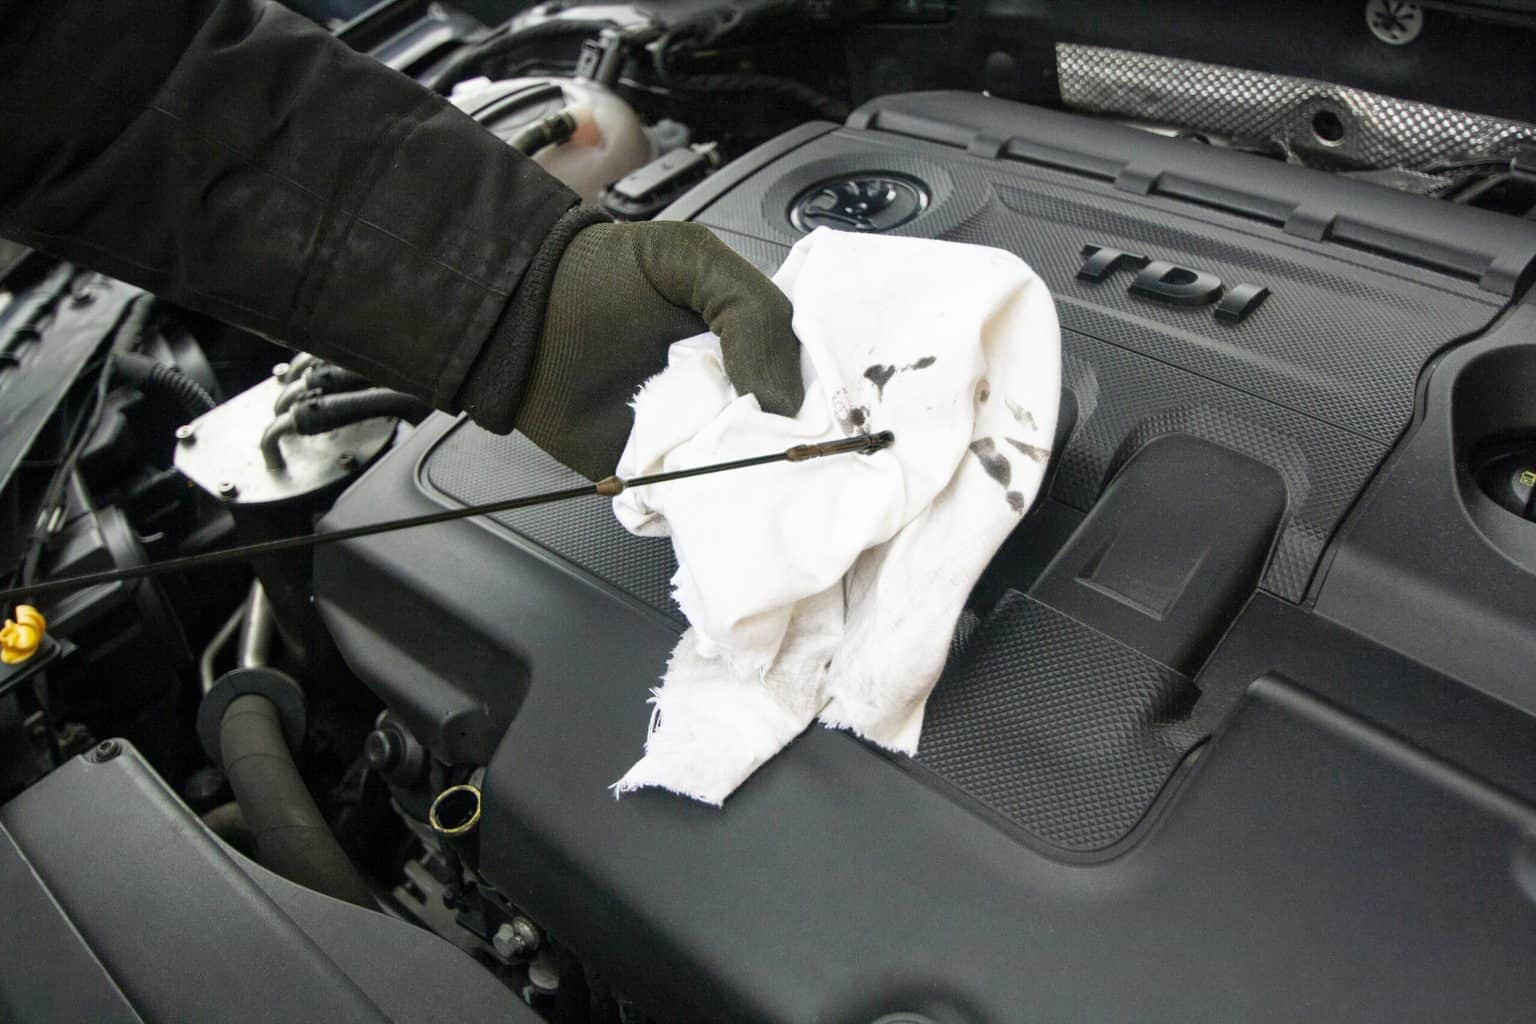 An oil change check for the mechanic